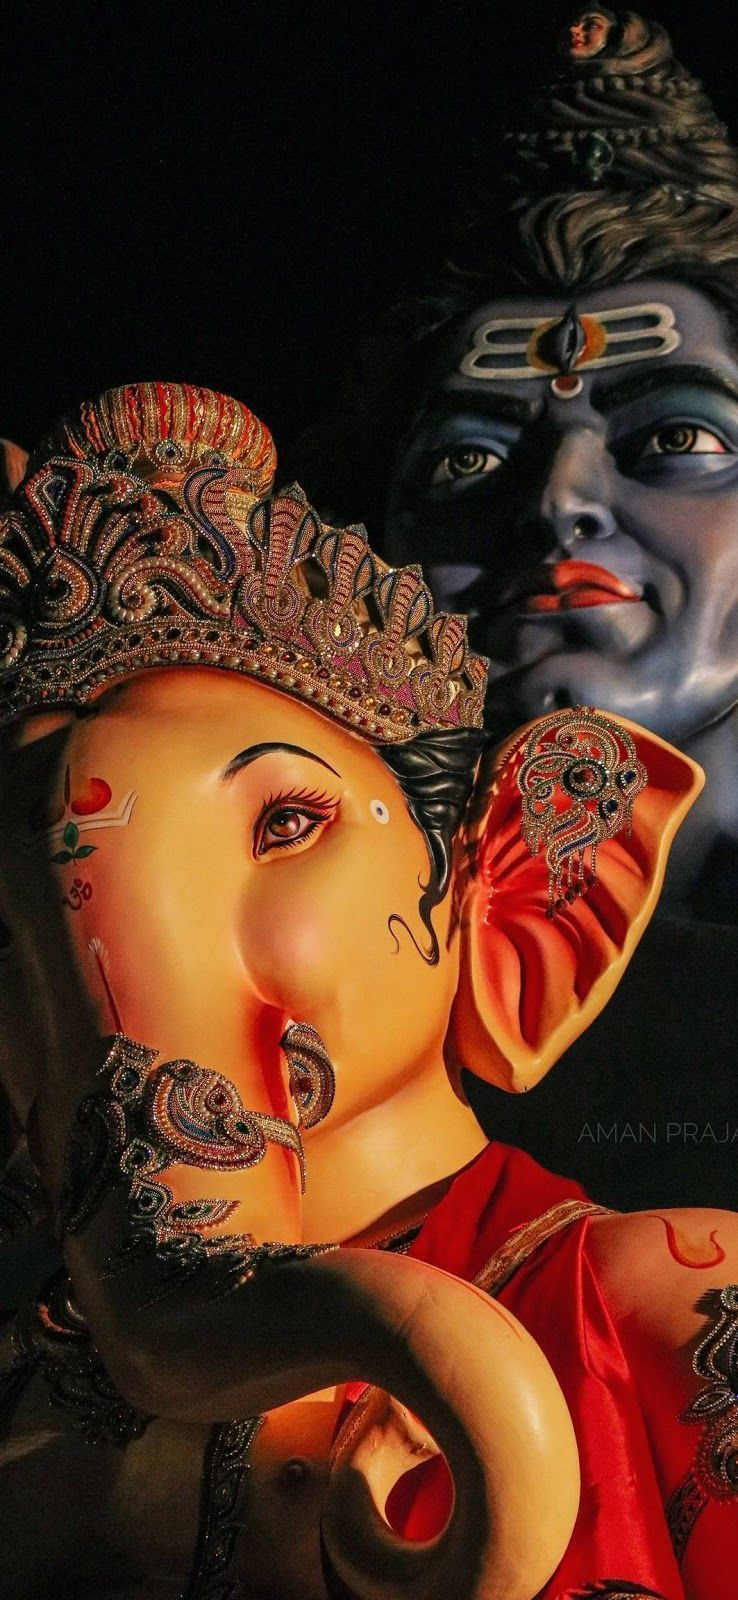 Lord Ganesha Ultra Hd Wallpaper For Mobile And Pc Background God Ganesha Full Hd Wallpapers Lord Ganesha Ganesha Hd Wallpapers For Mobile